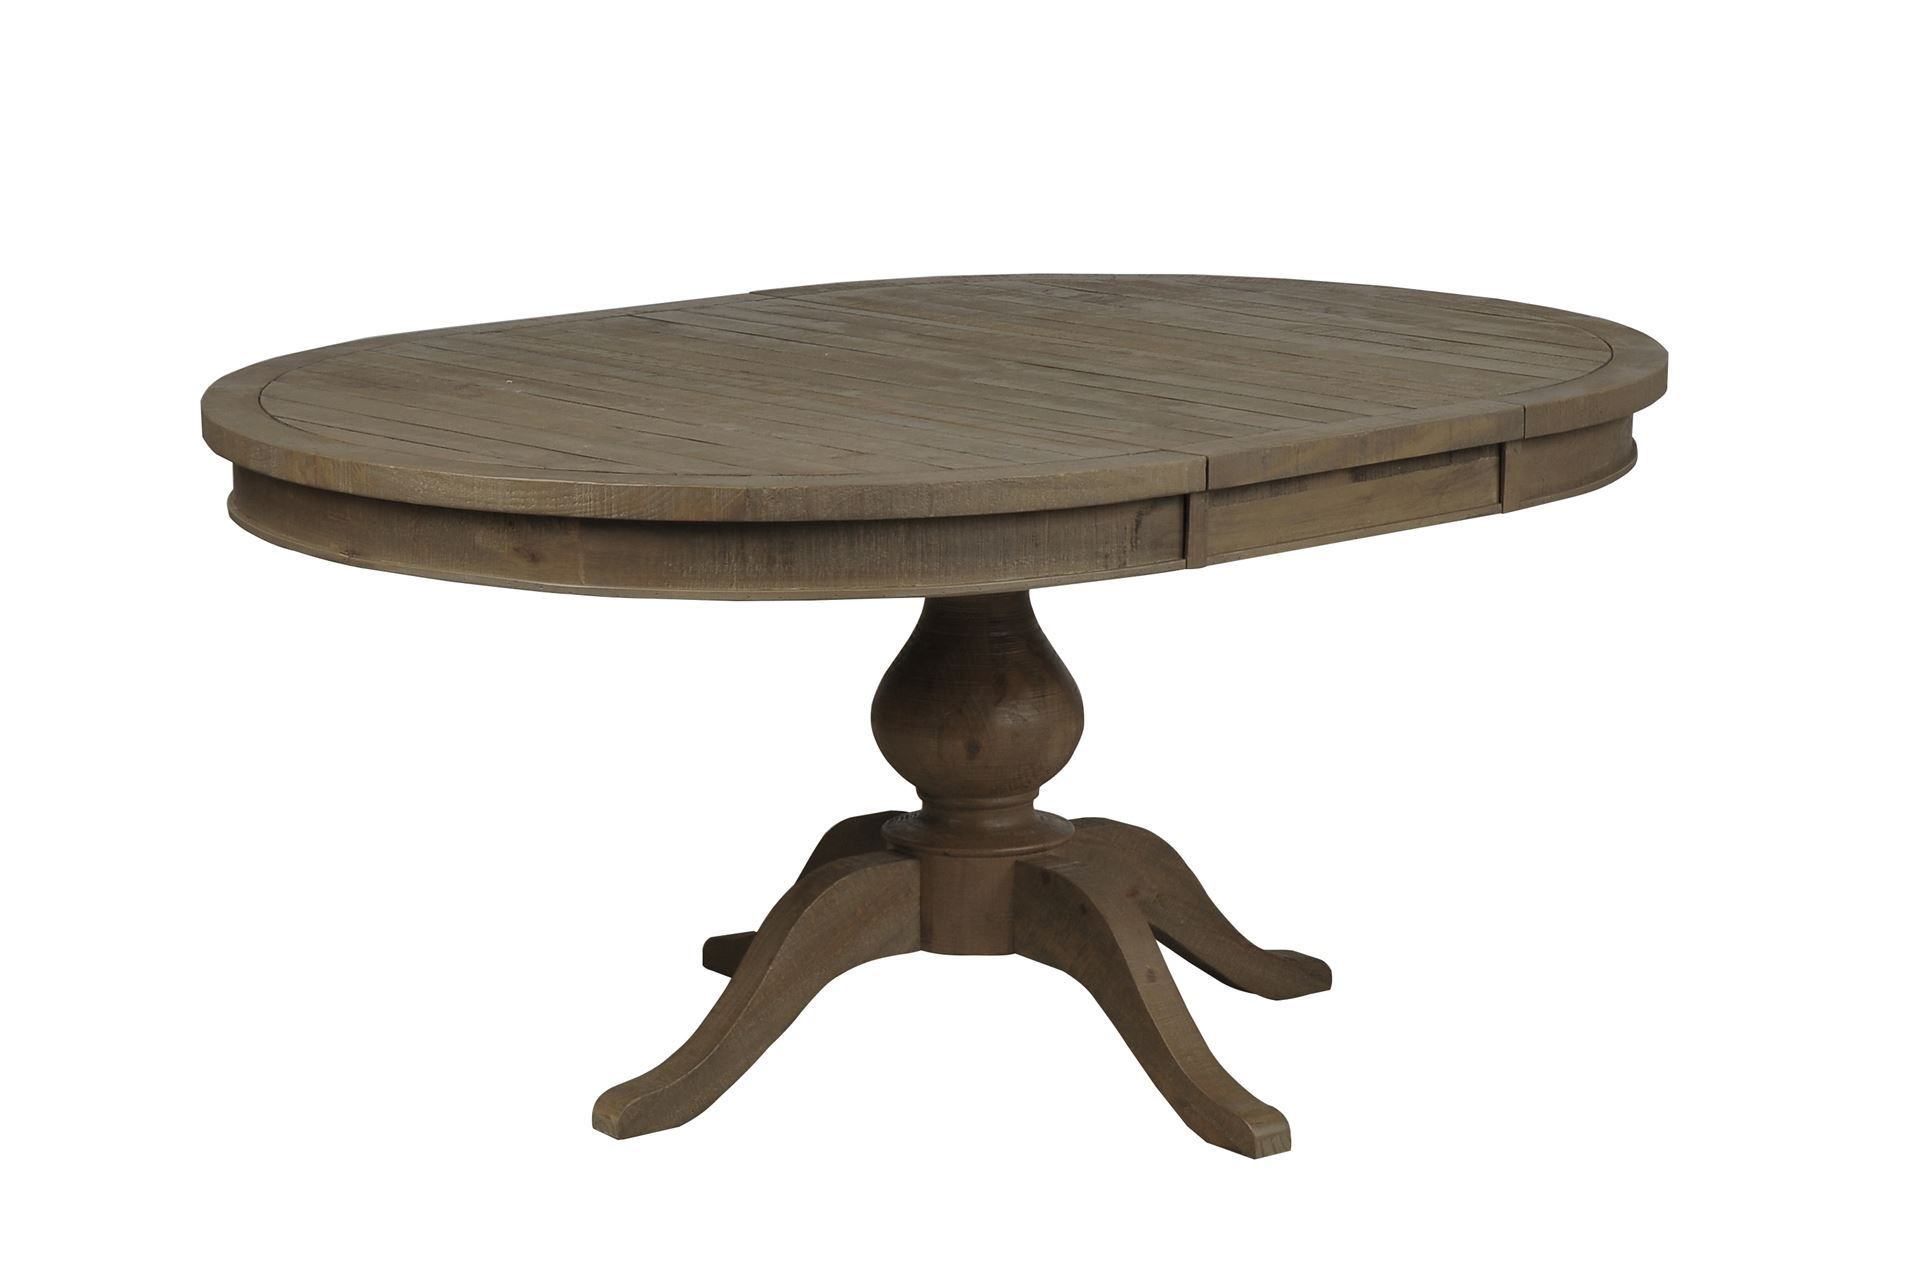 Beckett Round To Oval Dining Table Living Spaces 475 Table Only Solid Wood Dining Table Dining Table With Leaf Living Table